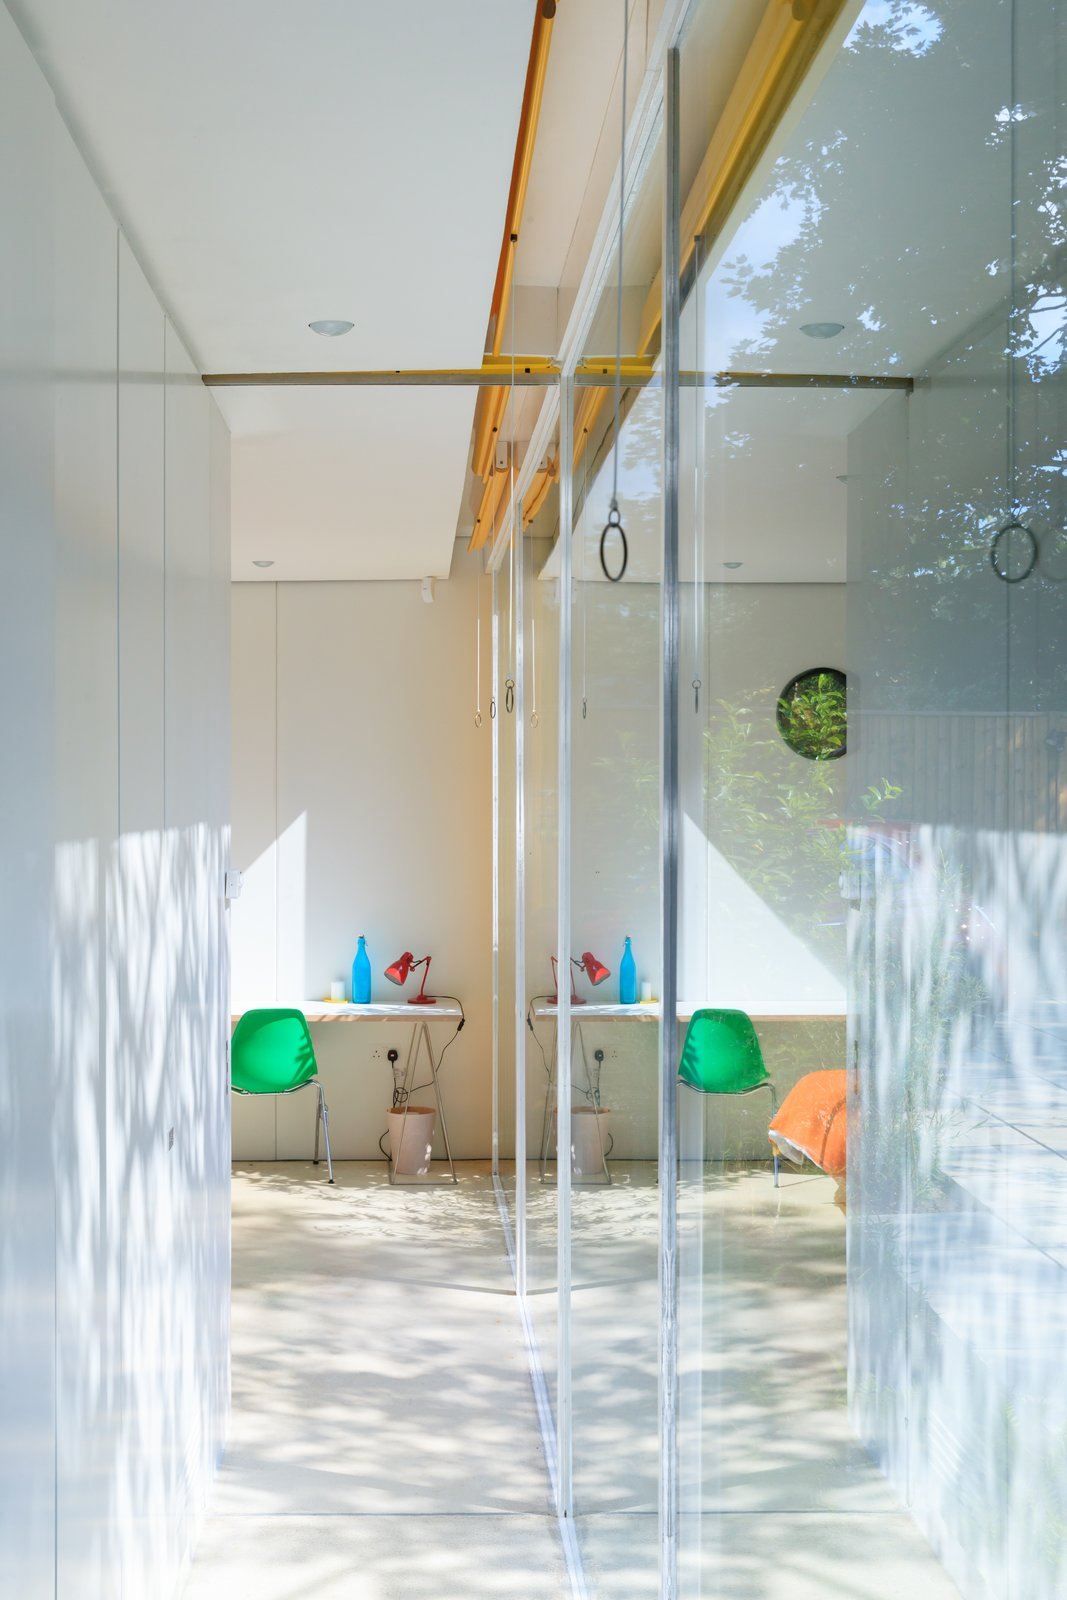 Hallway  Photo 5 of 14 in Fully Renovated, Wimbledon House by Richard Rogers Hosts New Architecture Fellows in London